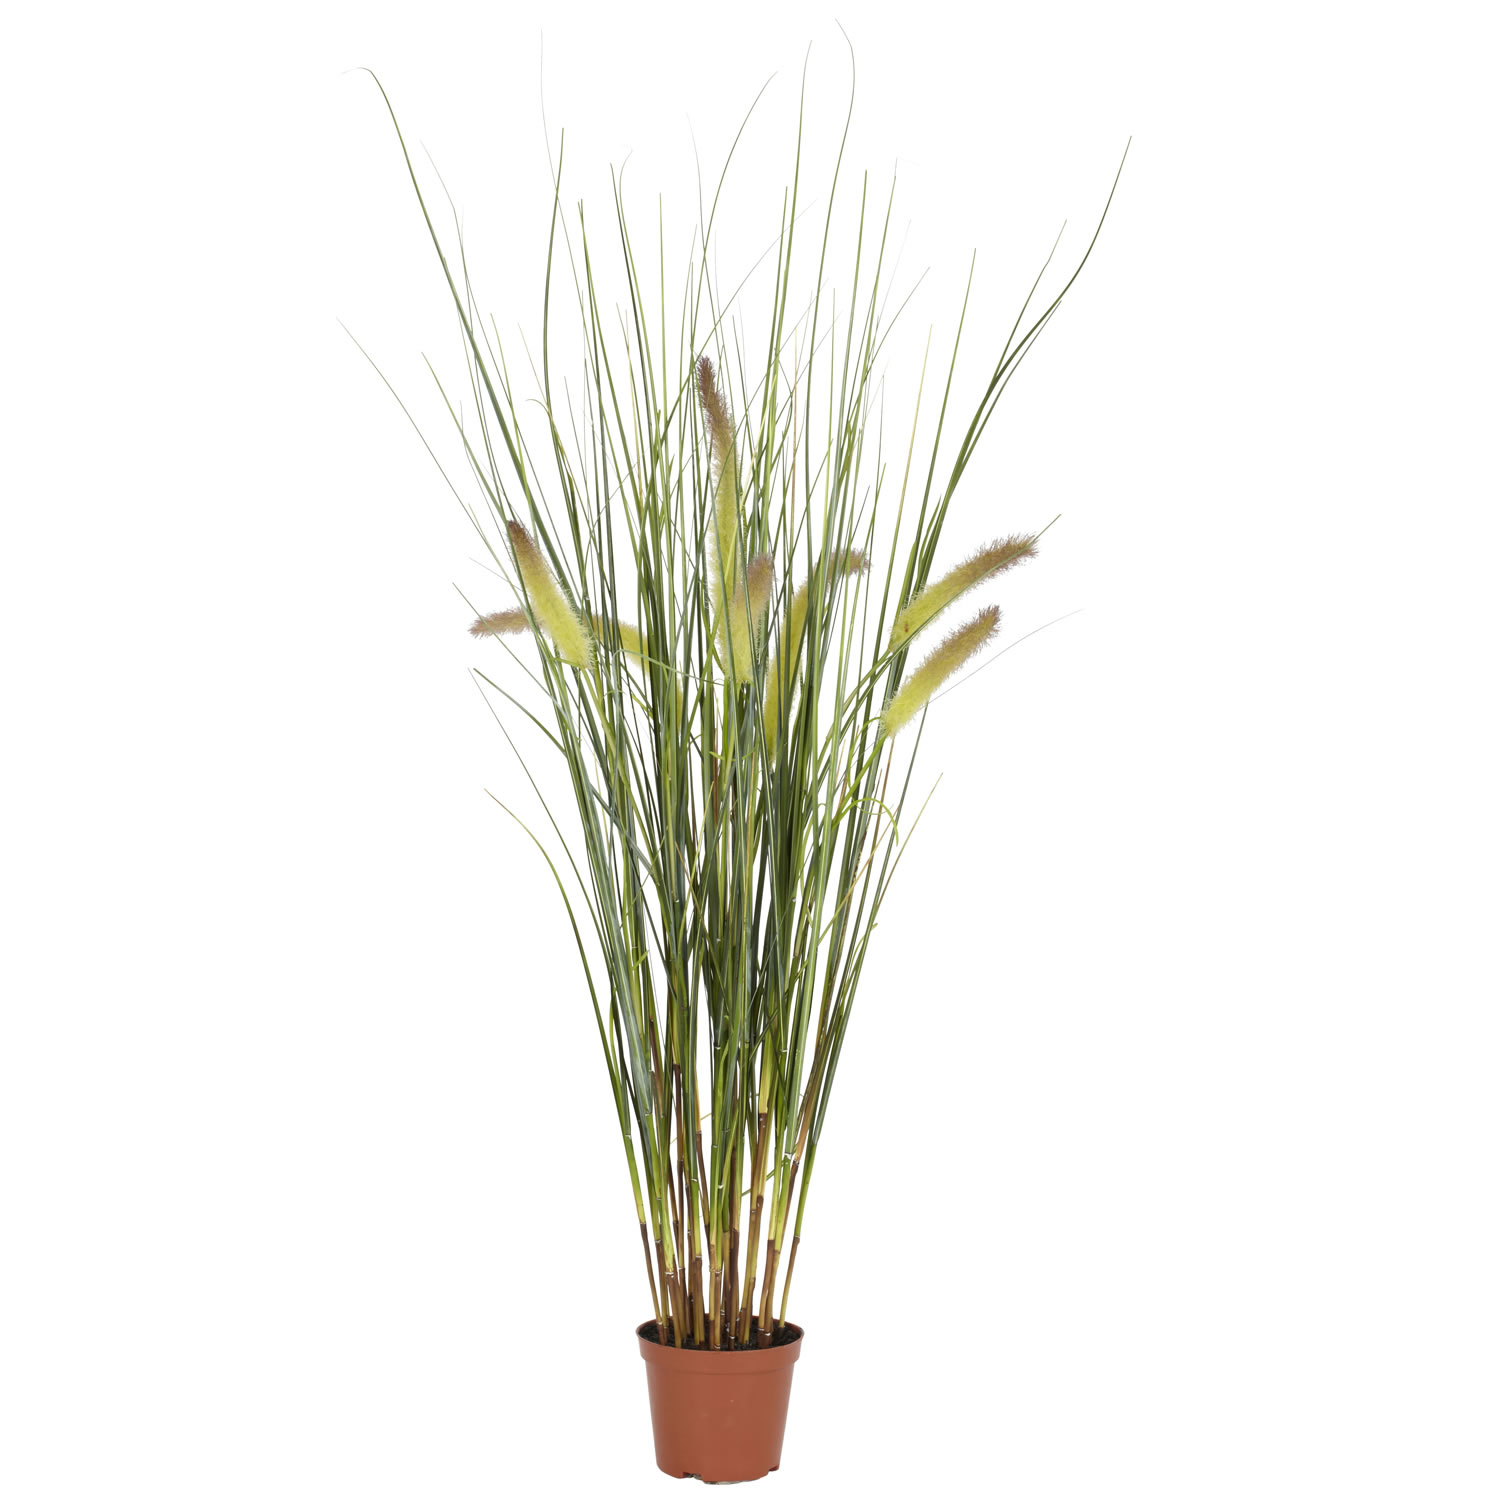 2 5 Foot Grass Plant Potted 6647